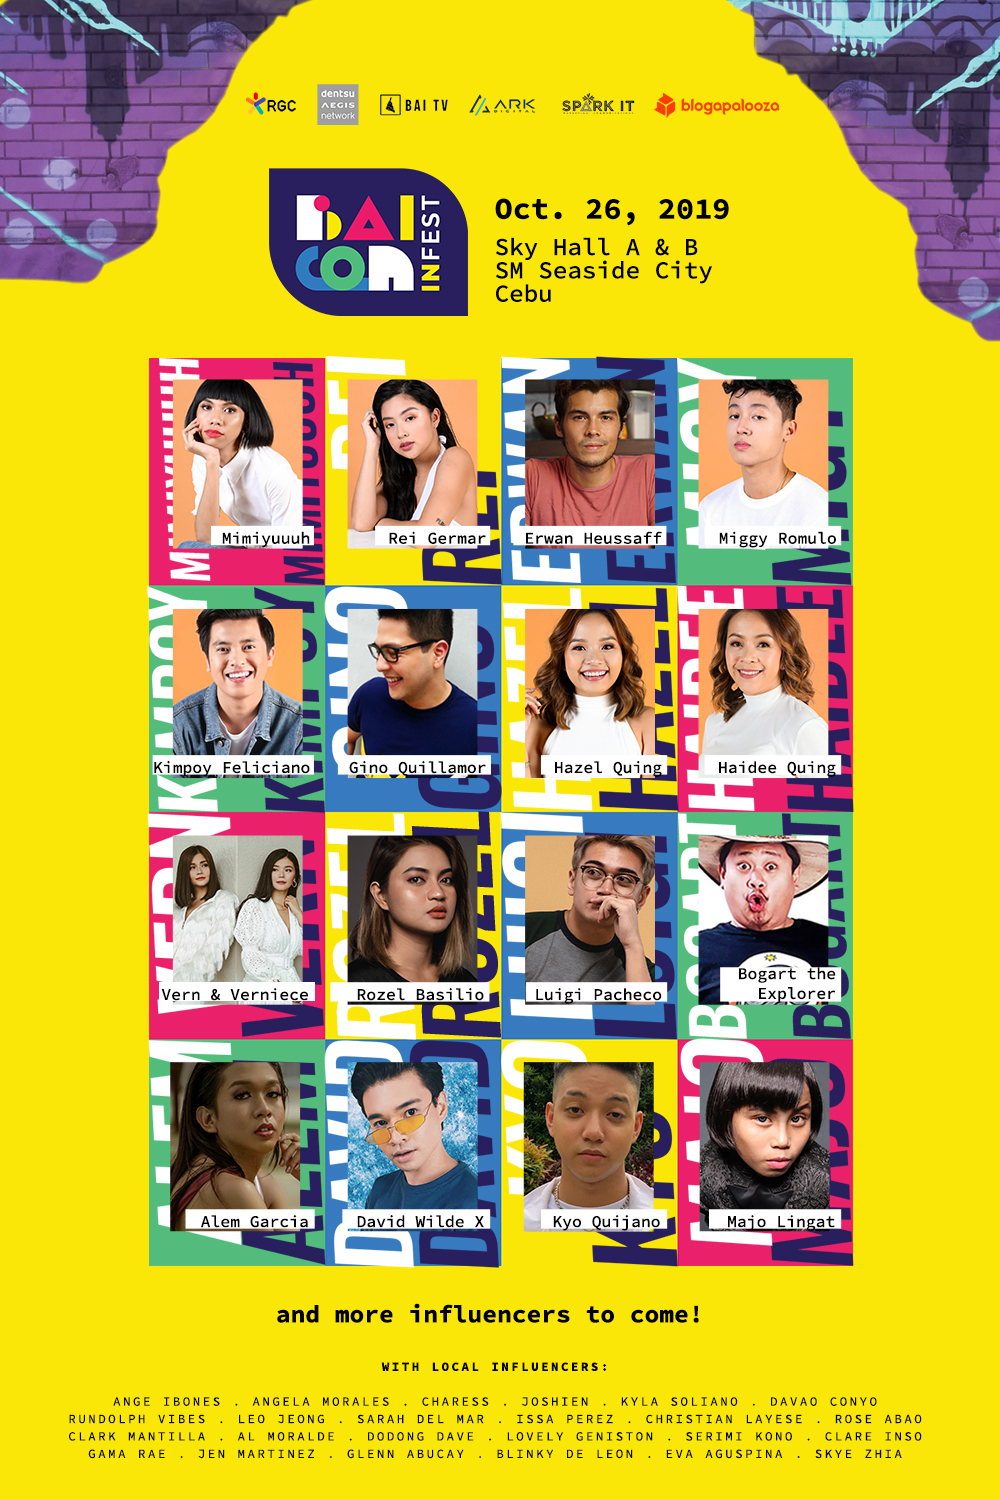 BaiCon Infest 2019: The Biggest Gathering of Content Creators in the Philippines